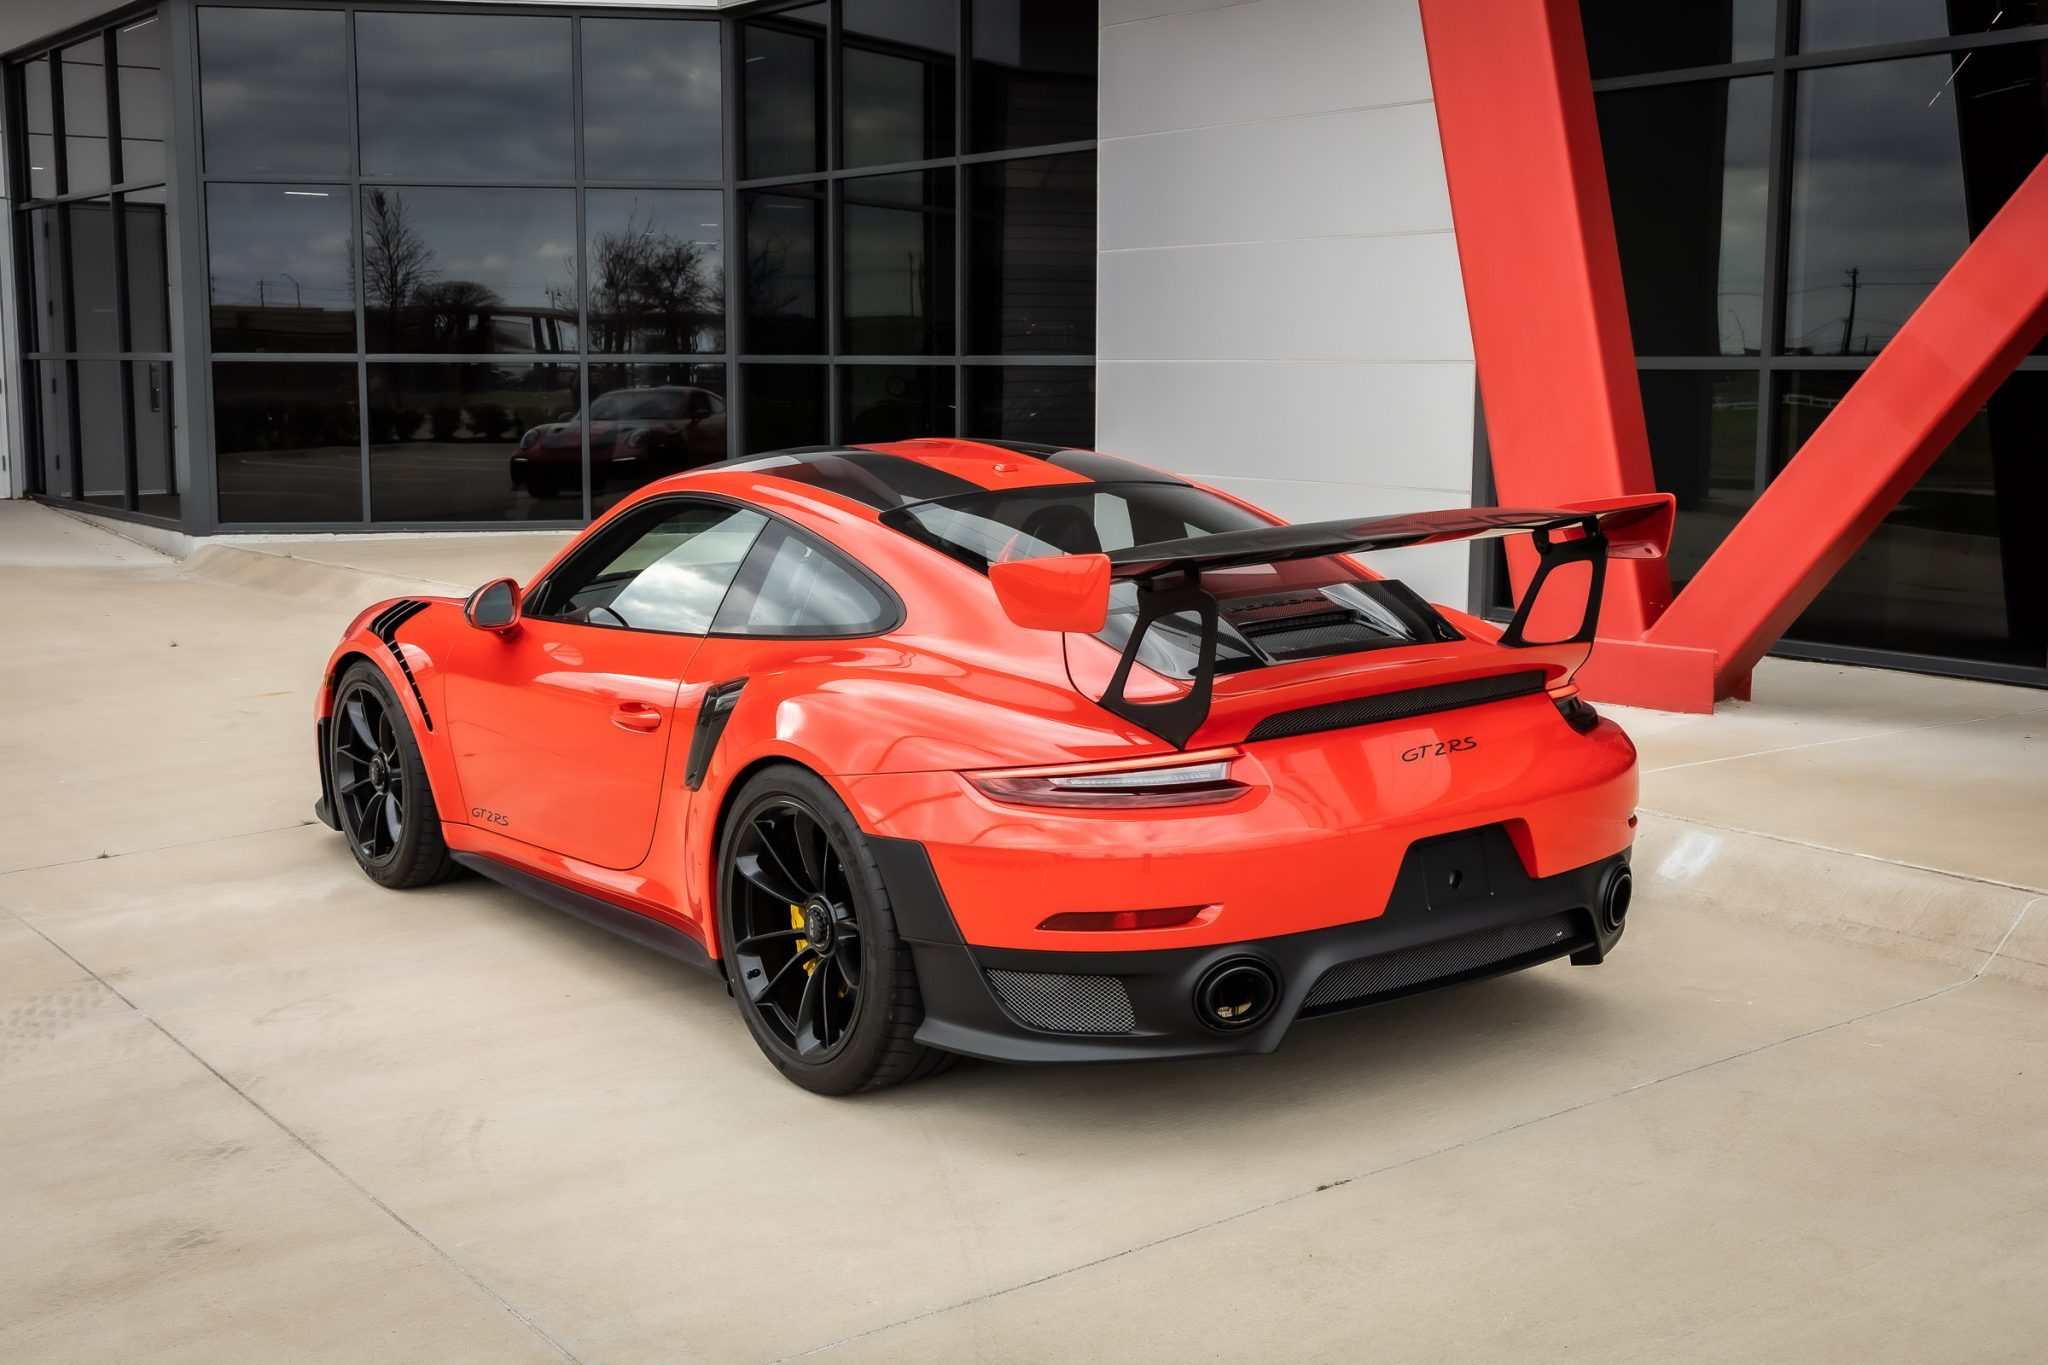 2018 GT2 RS Weissach Rear Angle